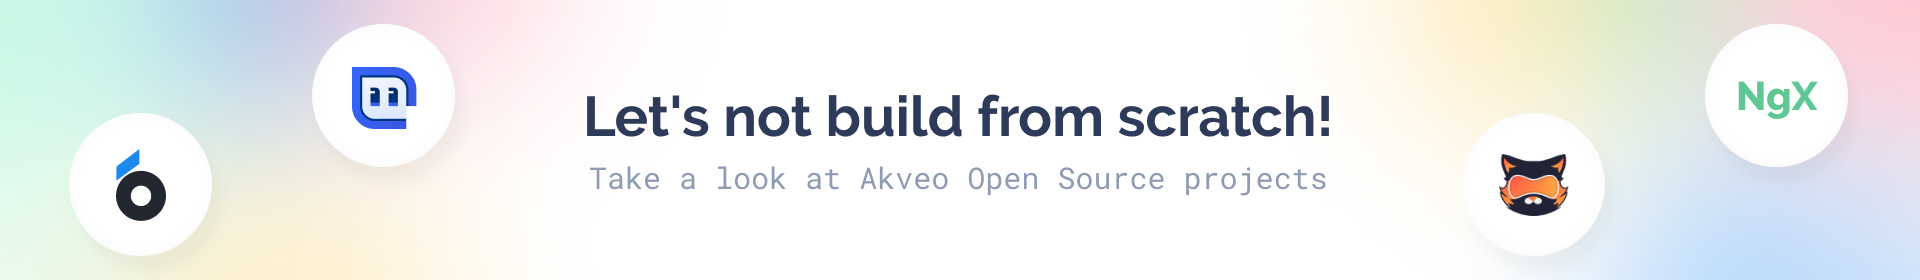 Akveo Open Source projects